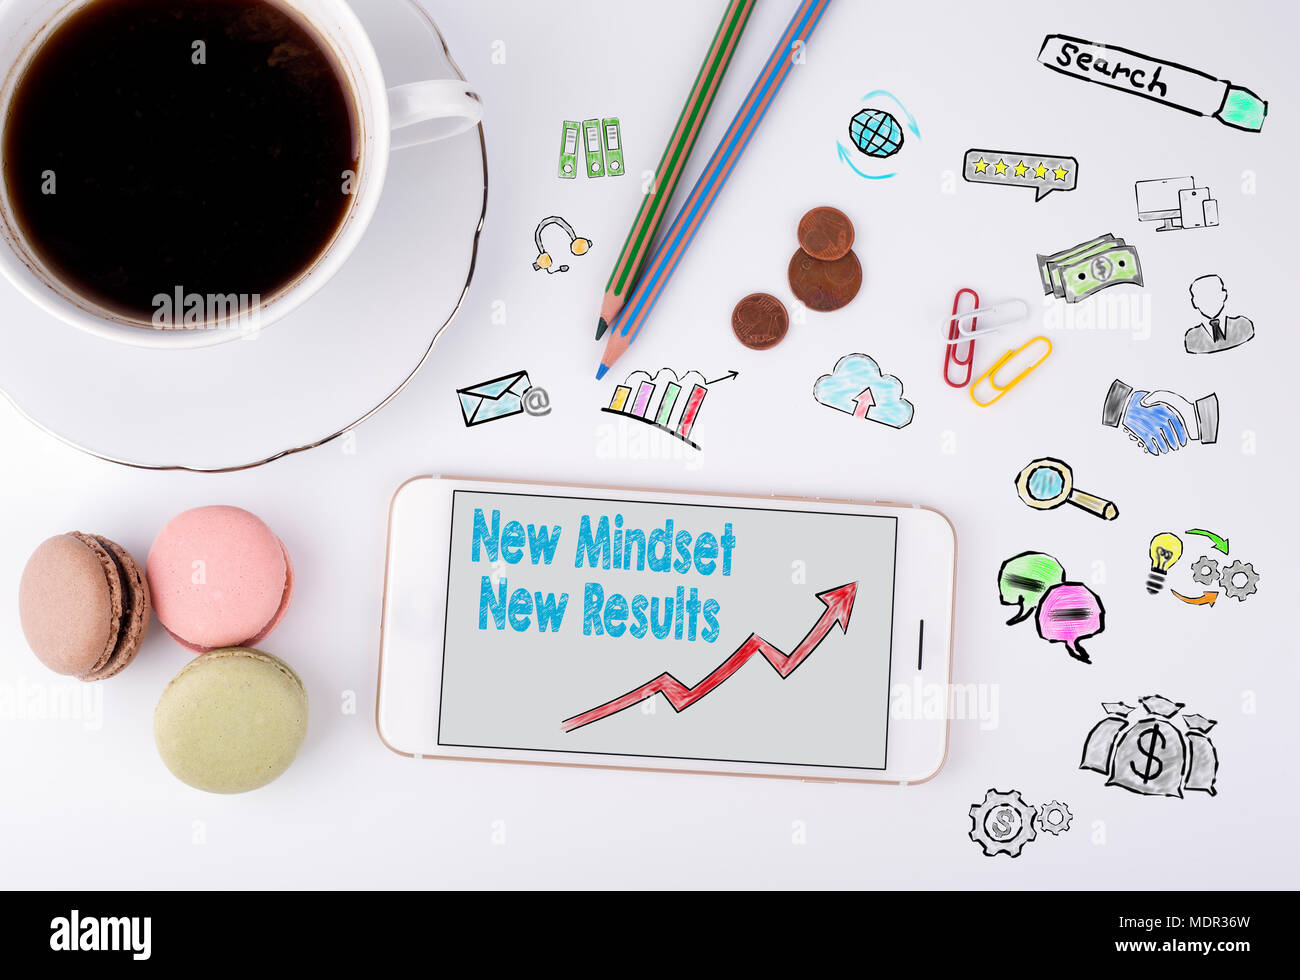 New Mindset New Results Concept. Mobile phone and coffee cup on a white office desk - Stock Image